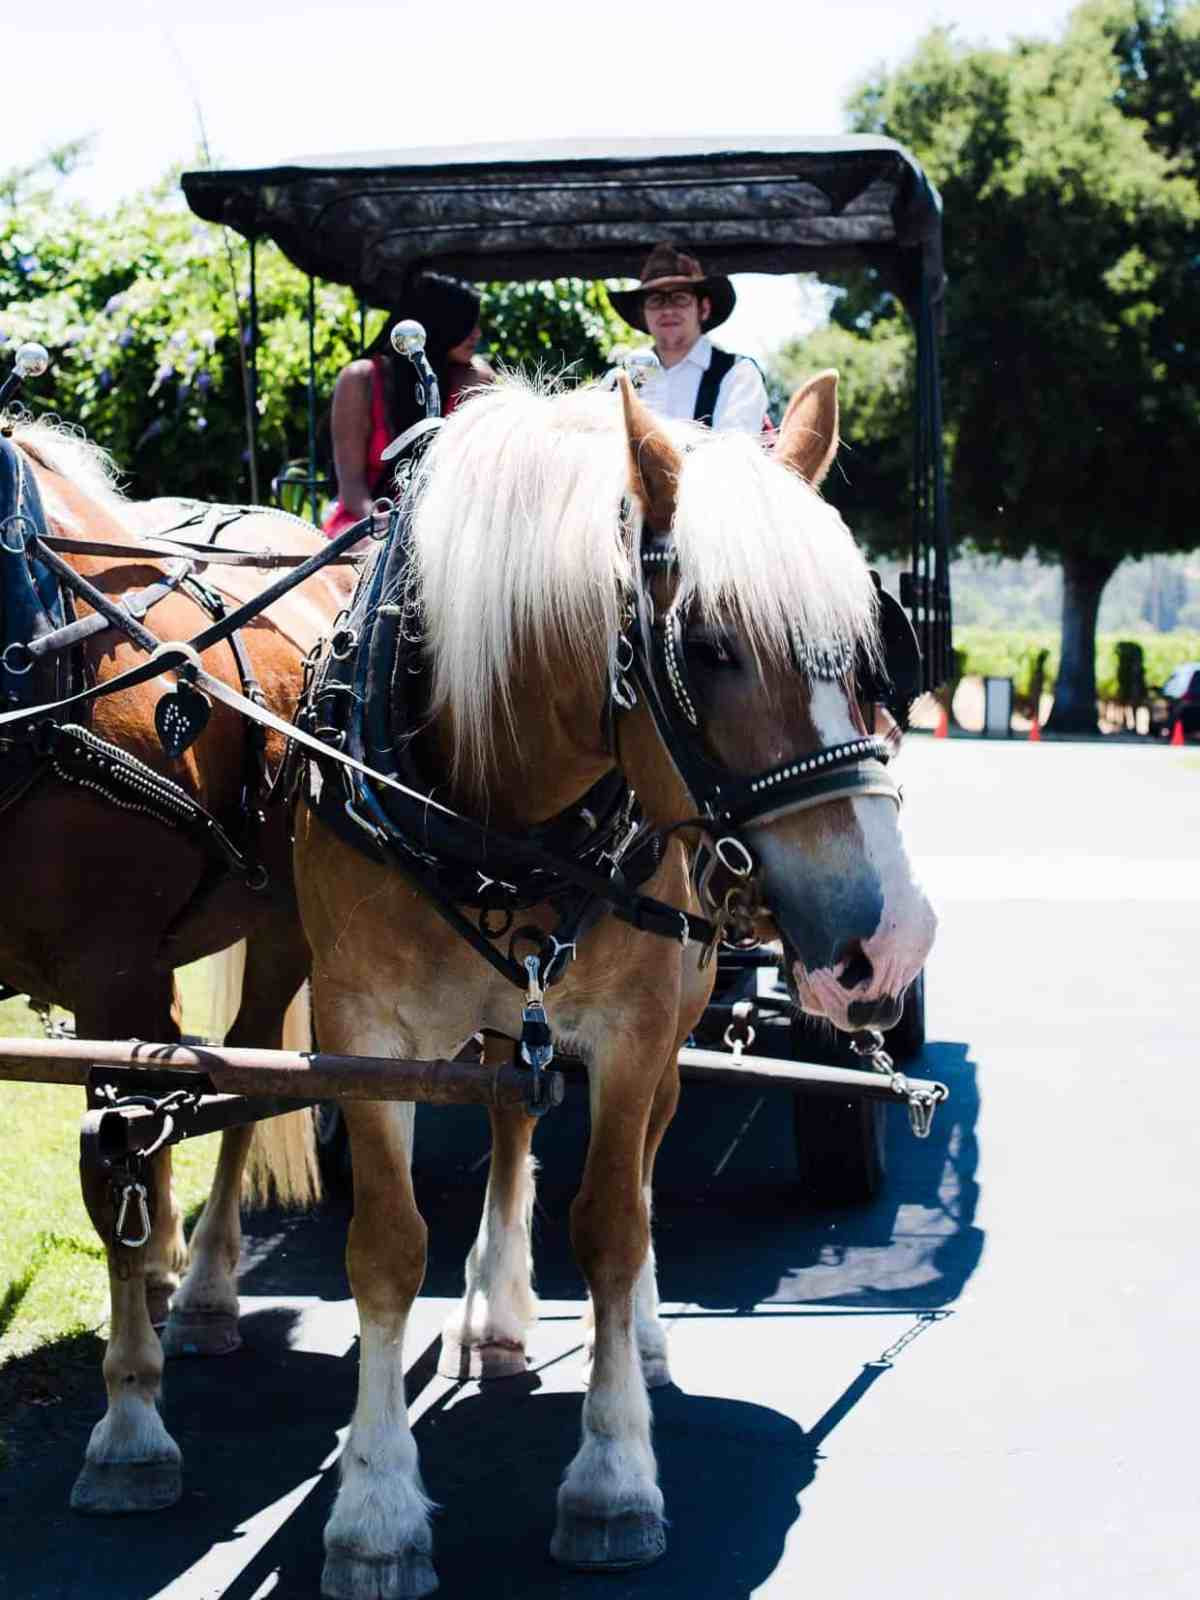 Two tan horses pulling a carriage at a winery.